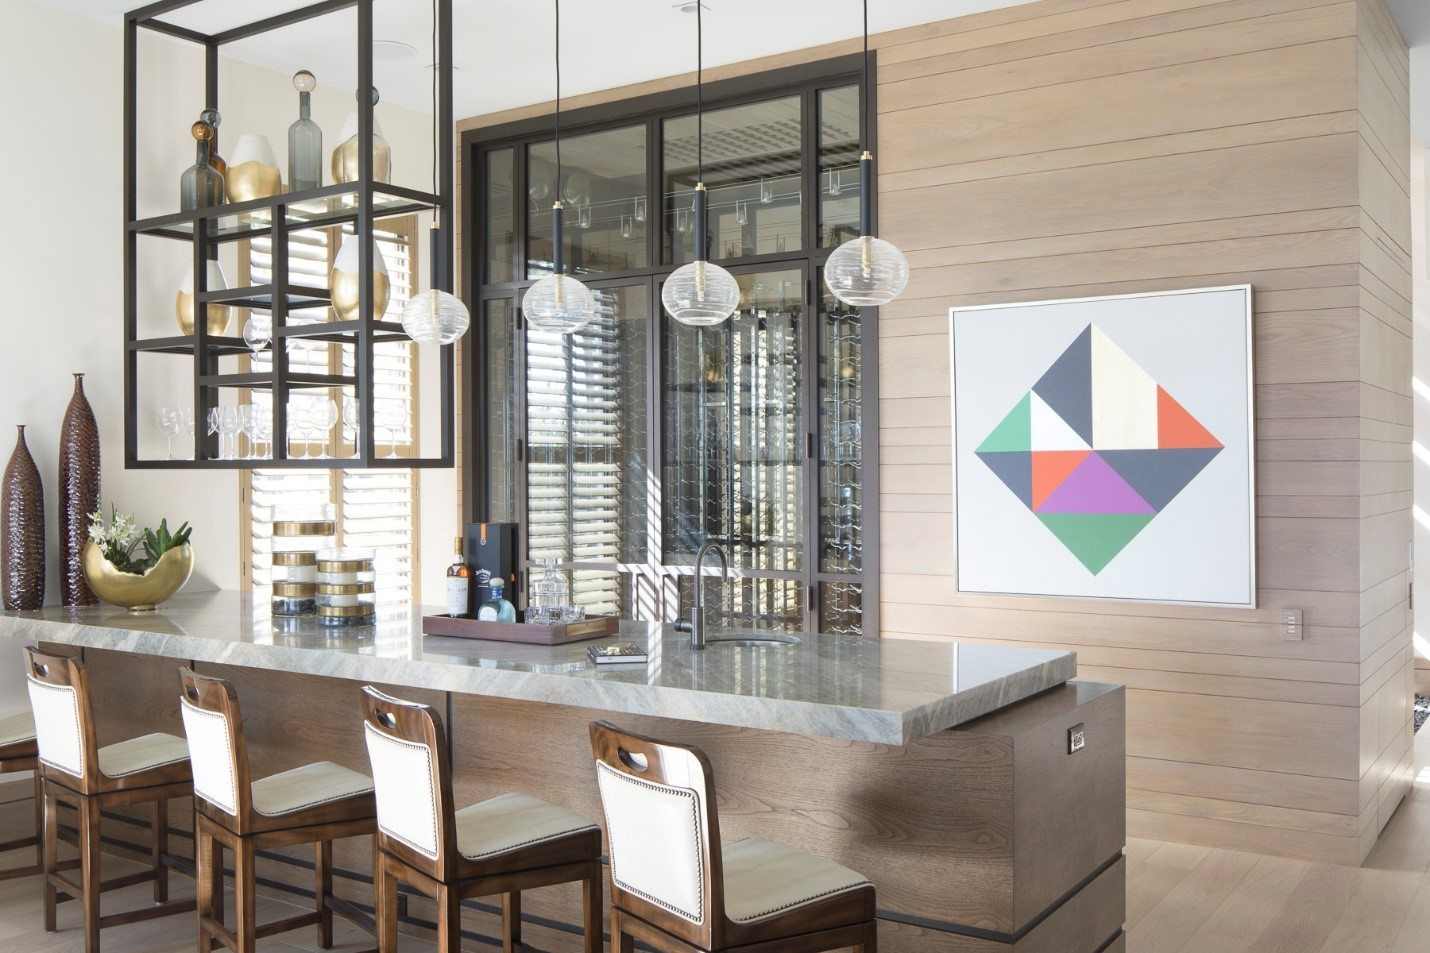 Neutral Interior Design kitchen space with a perfect pop of bright color